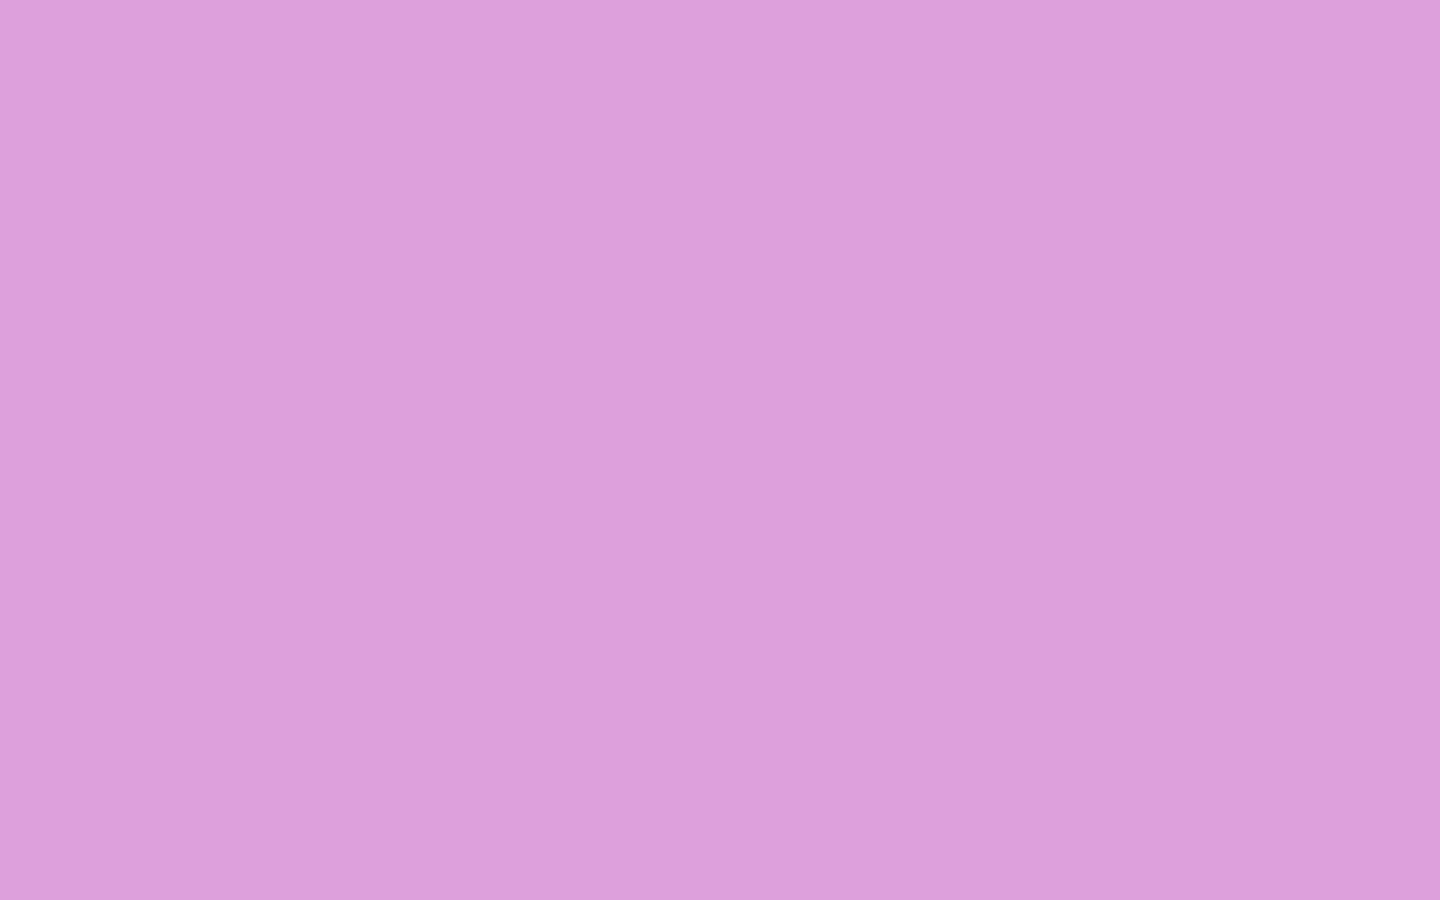 1440x900 Pale Plum Solid Color Background